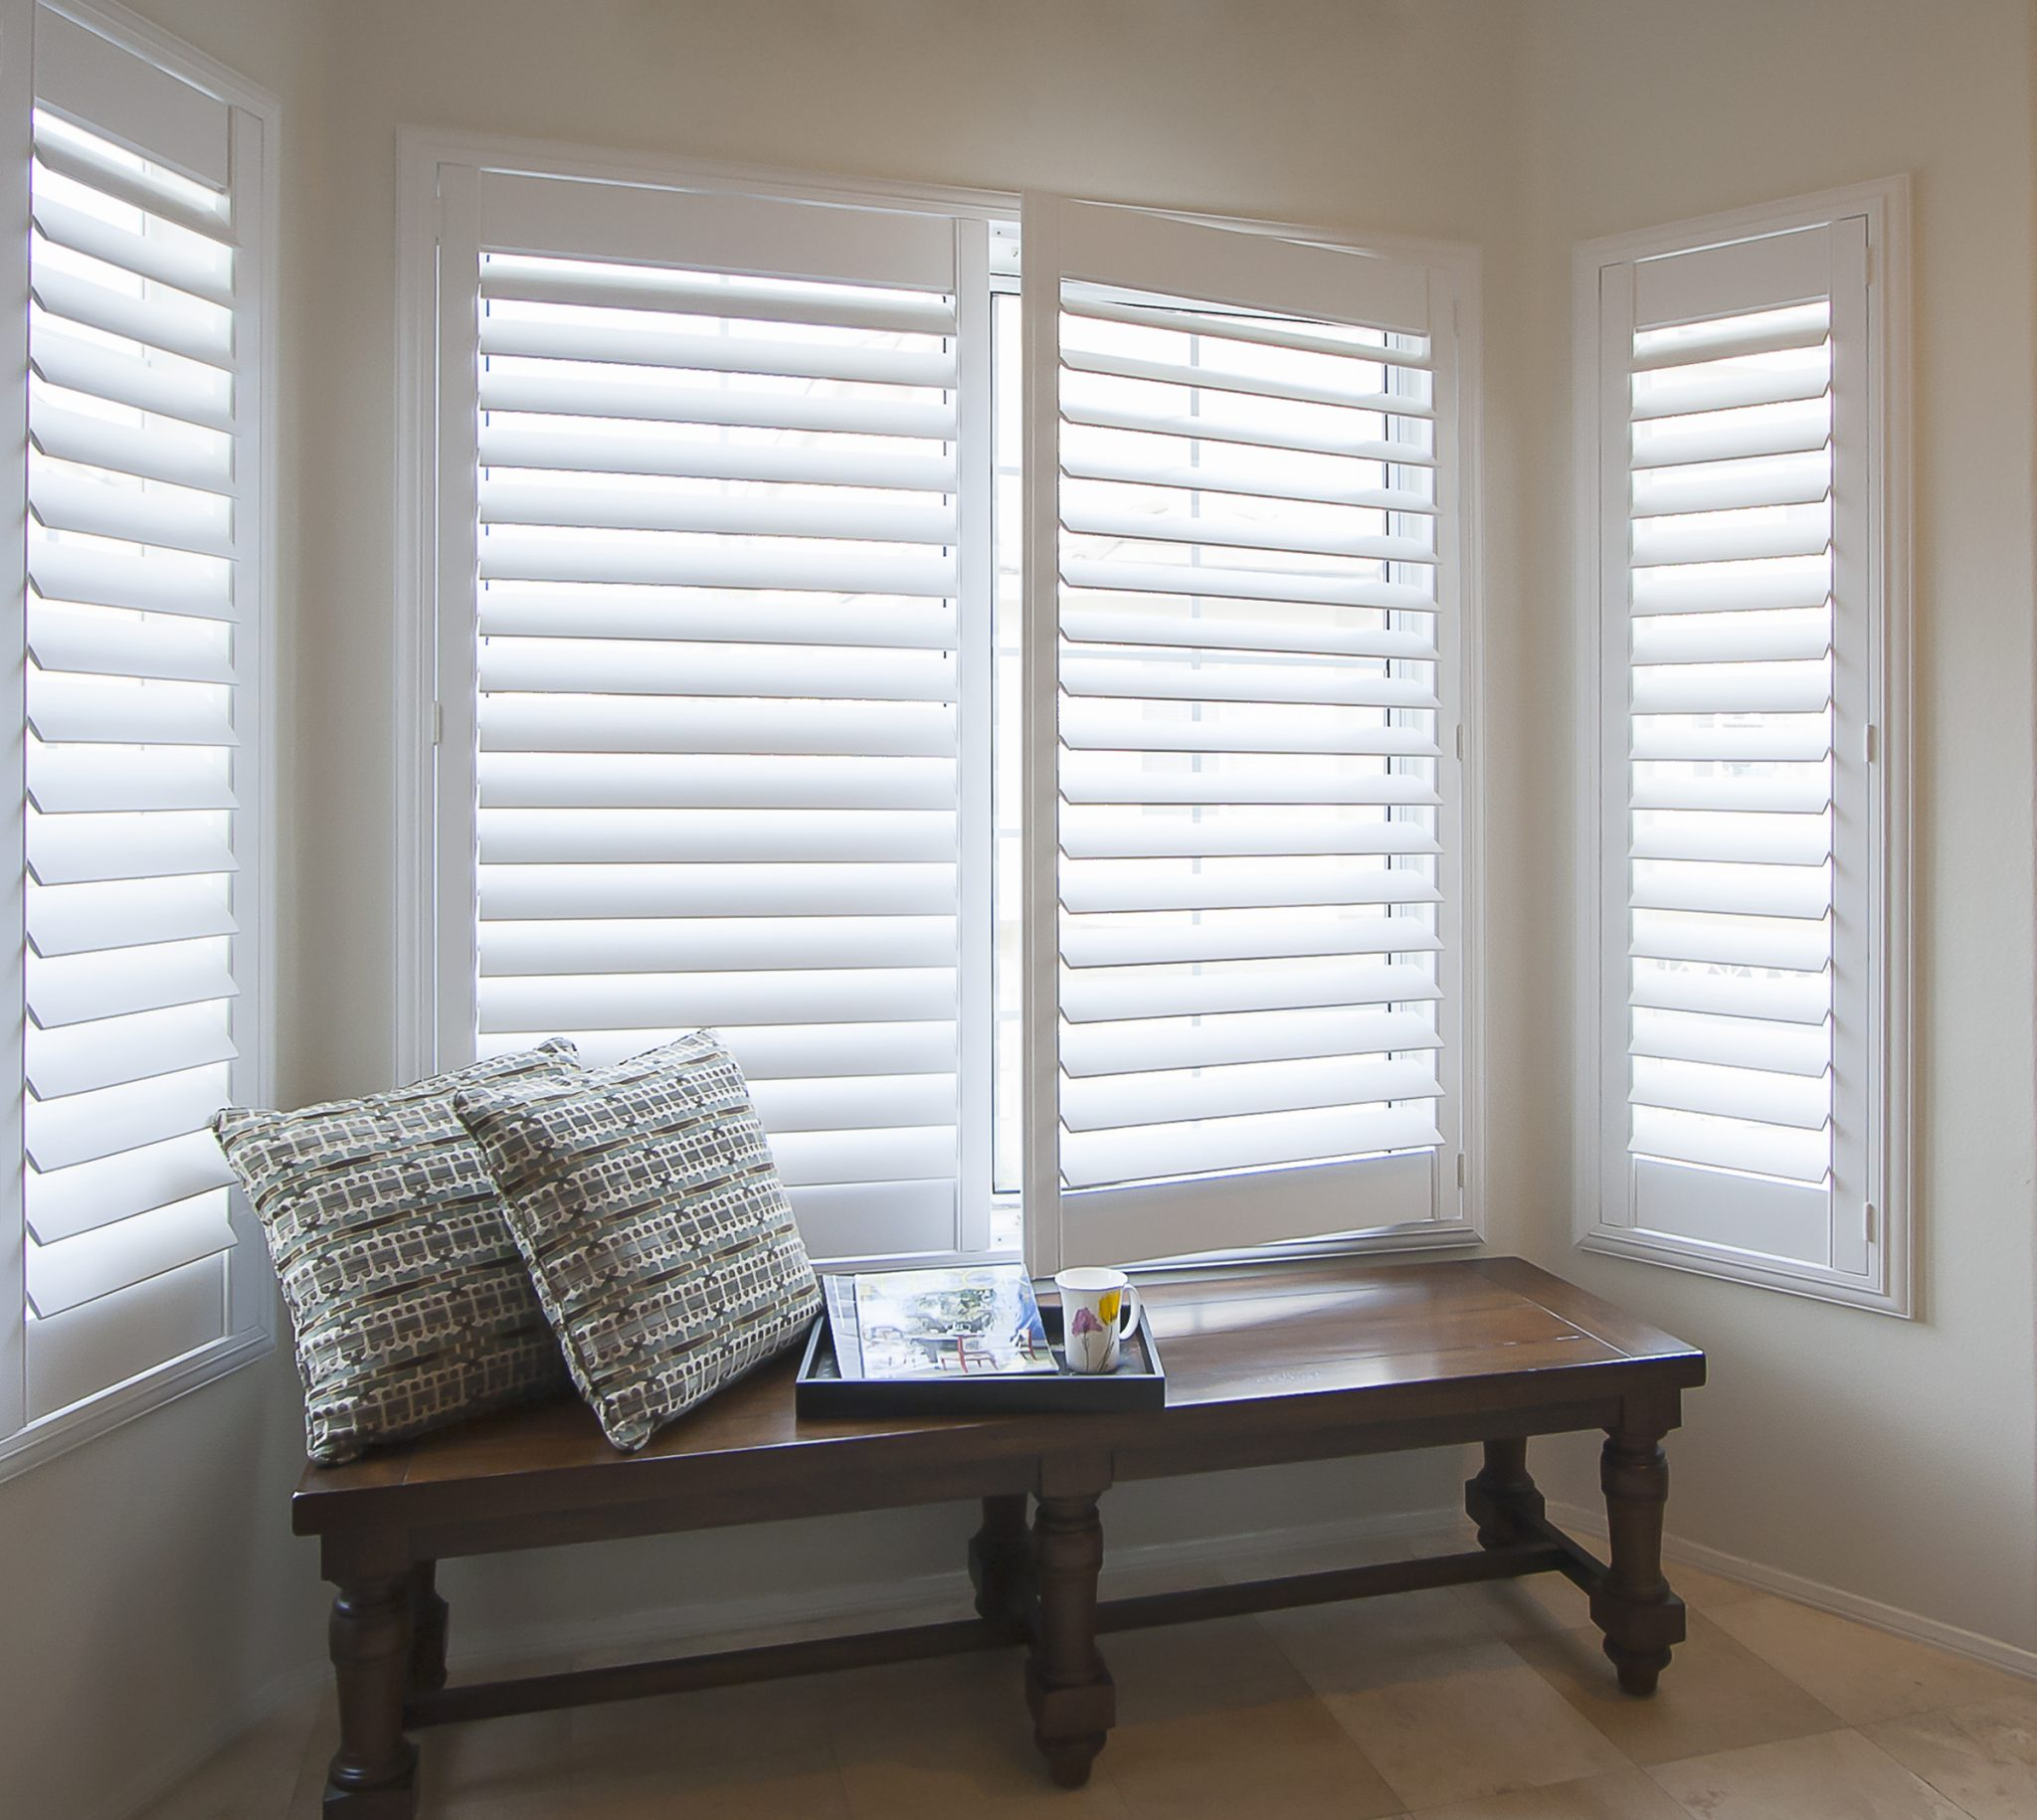 Veneta DIY Shutters with Deco Frame